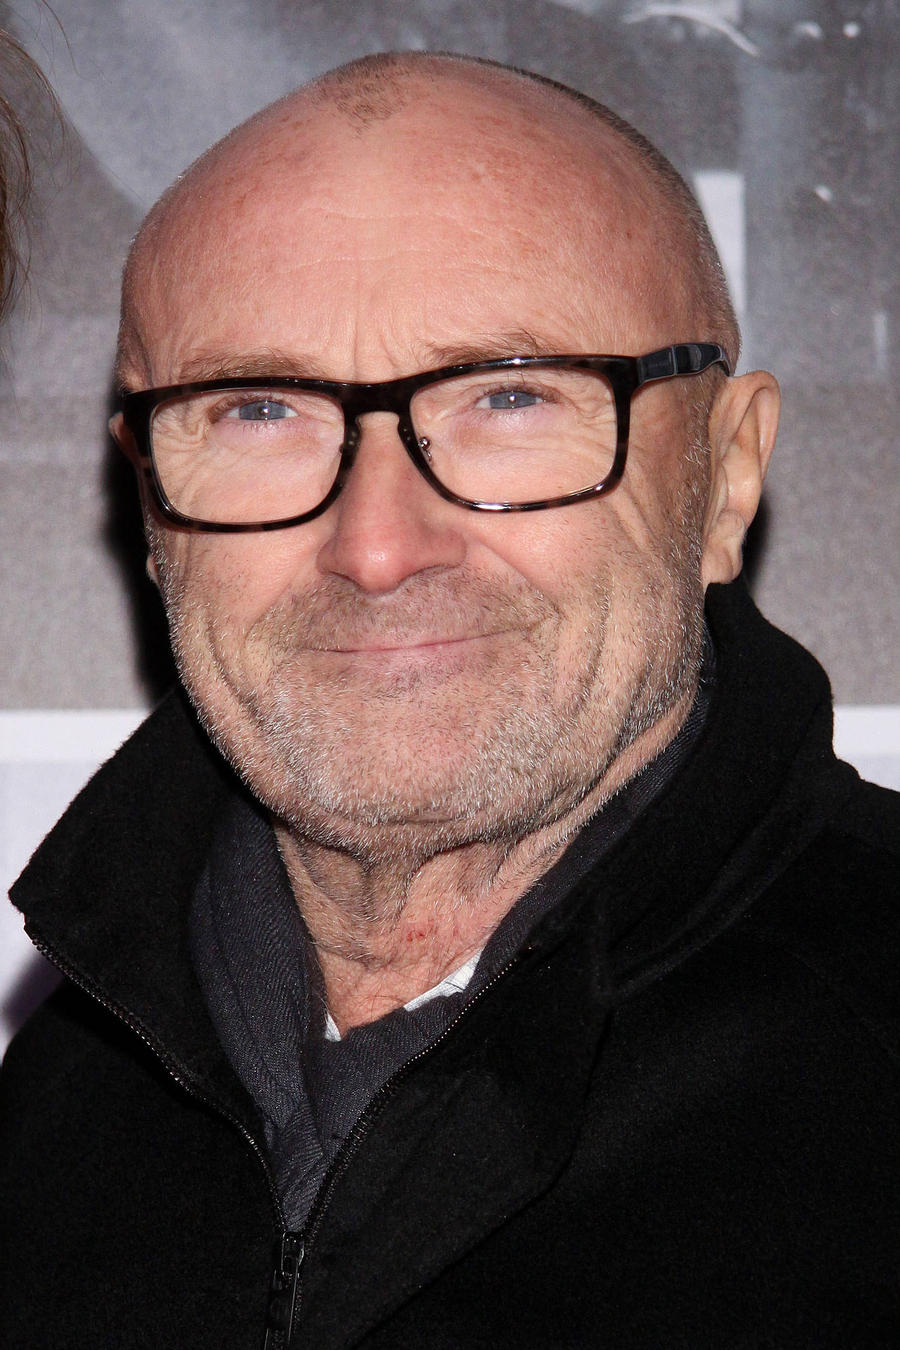 Phil Collins' Ex-wife Begins Divorce Proceedings